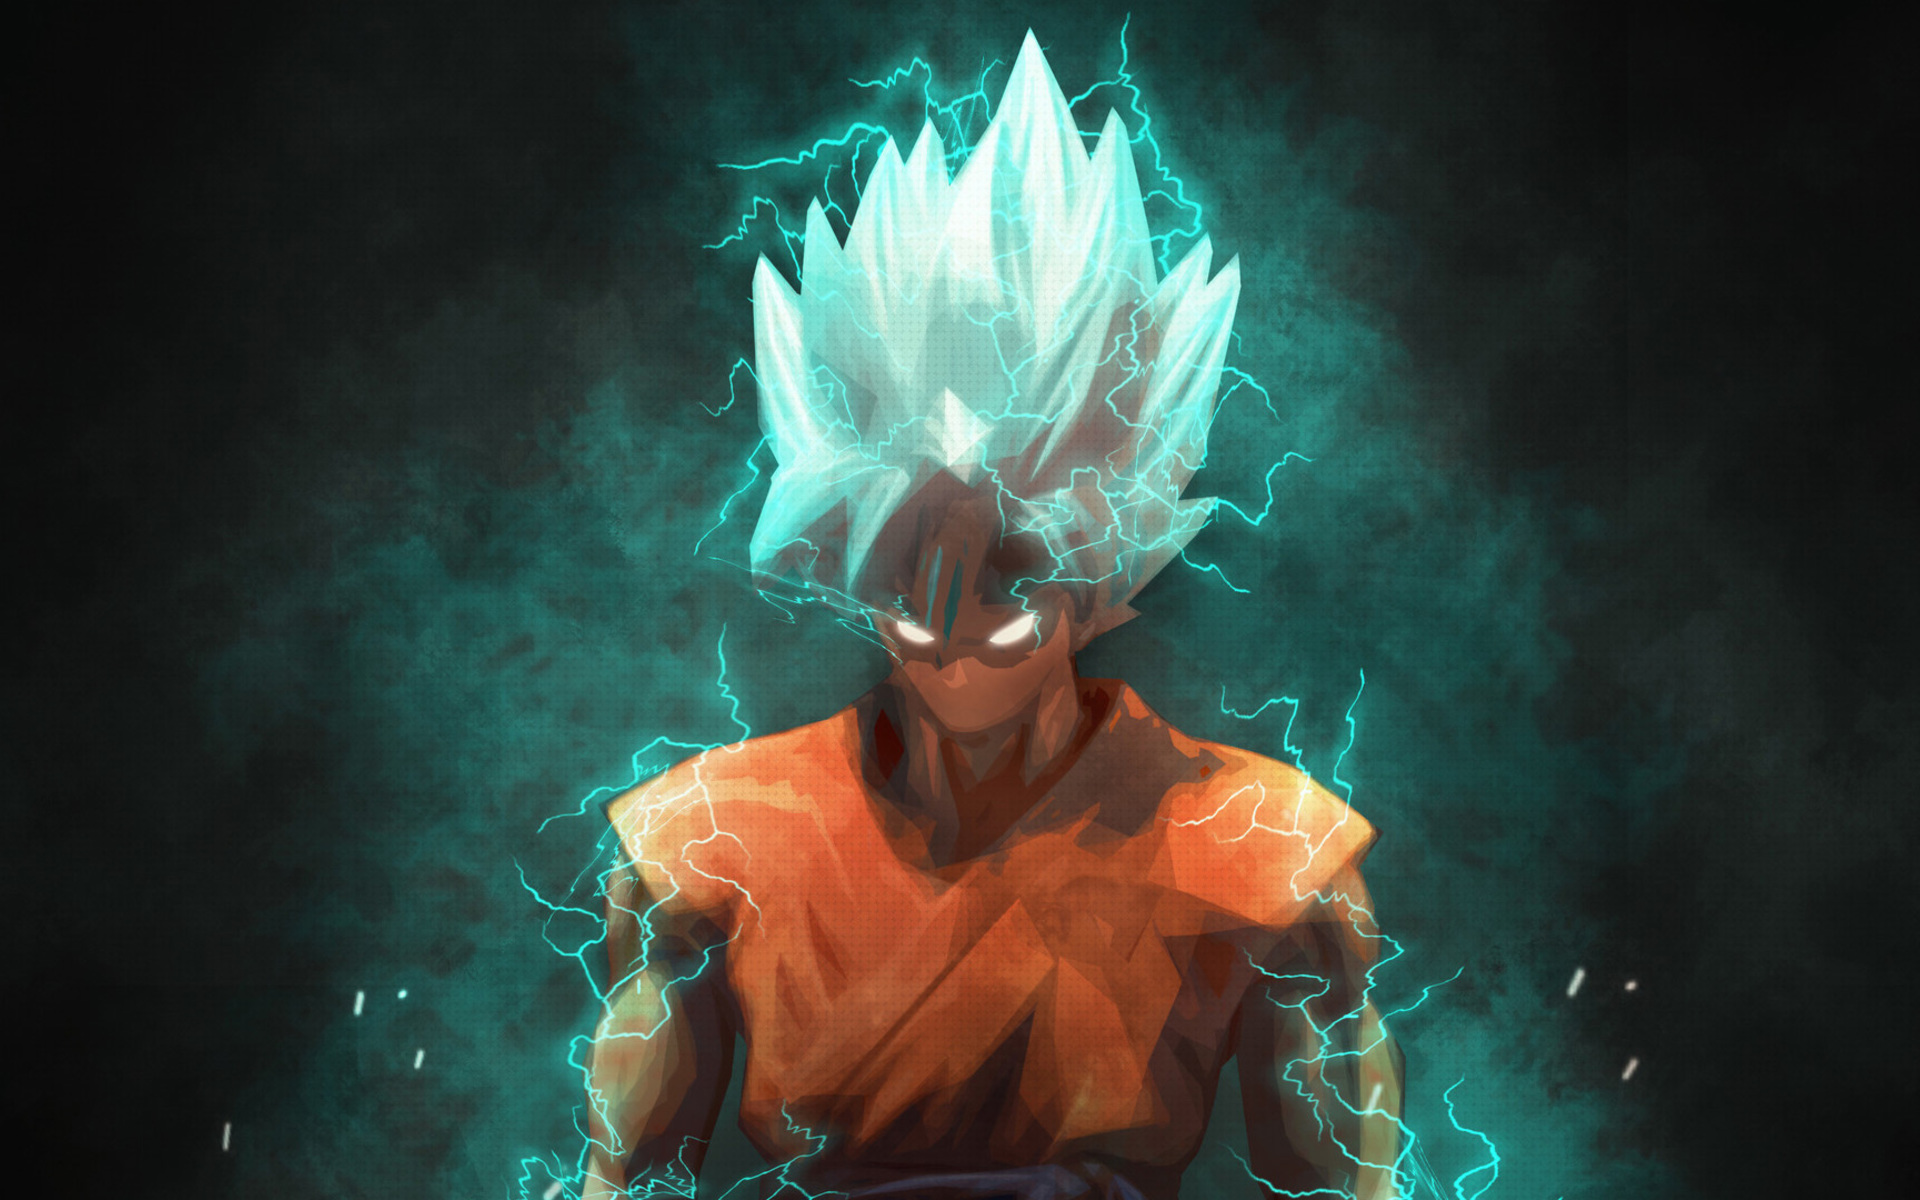 Blue Goku Lightnings Super Saiyan Blue Darkness Goku Wallpaper Hd 4k 1920x1200 Wallpaper Teahub Io